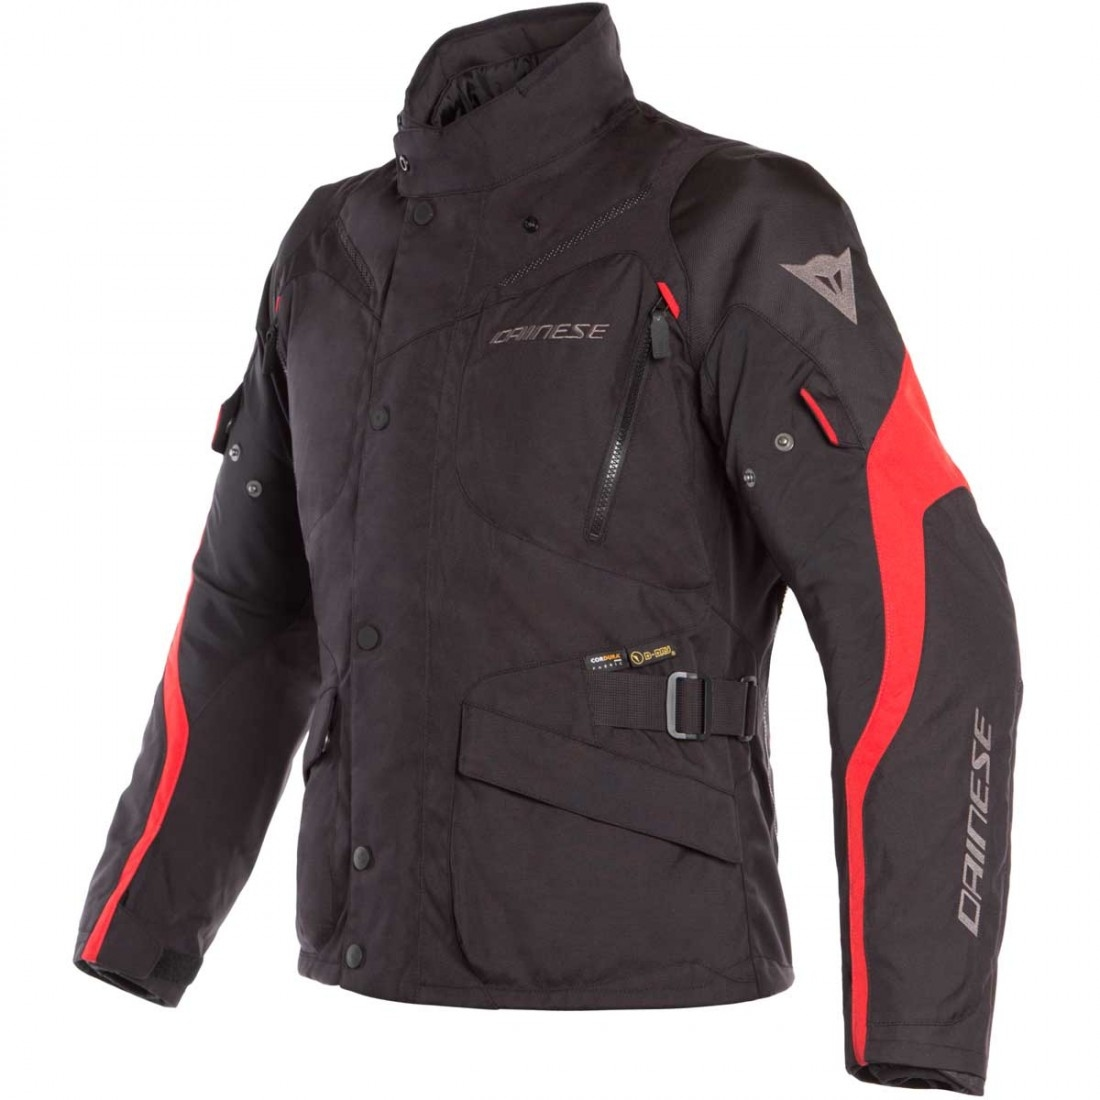 Ropa invierno carretera Dainese-tempest_2_d_dry_black_black_tour_red_00a-0-M-08822221-xlarge